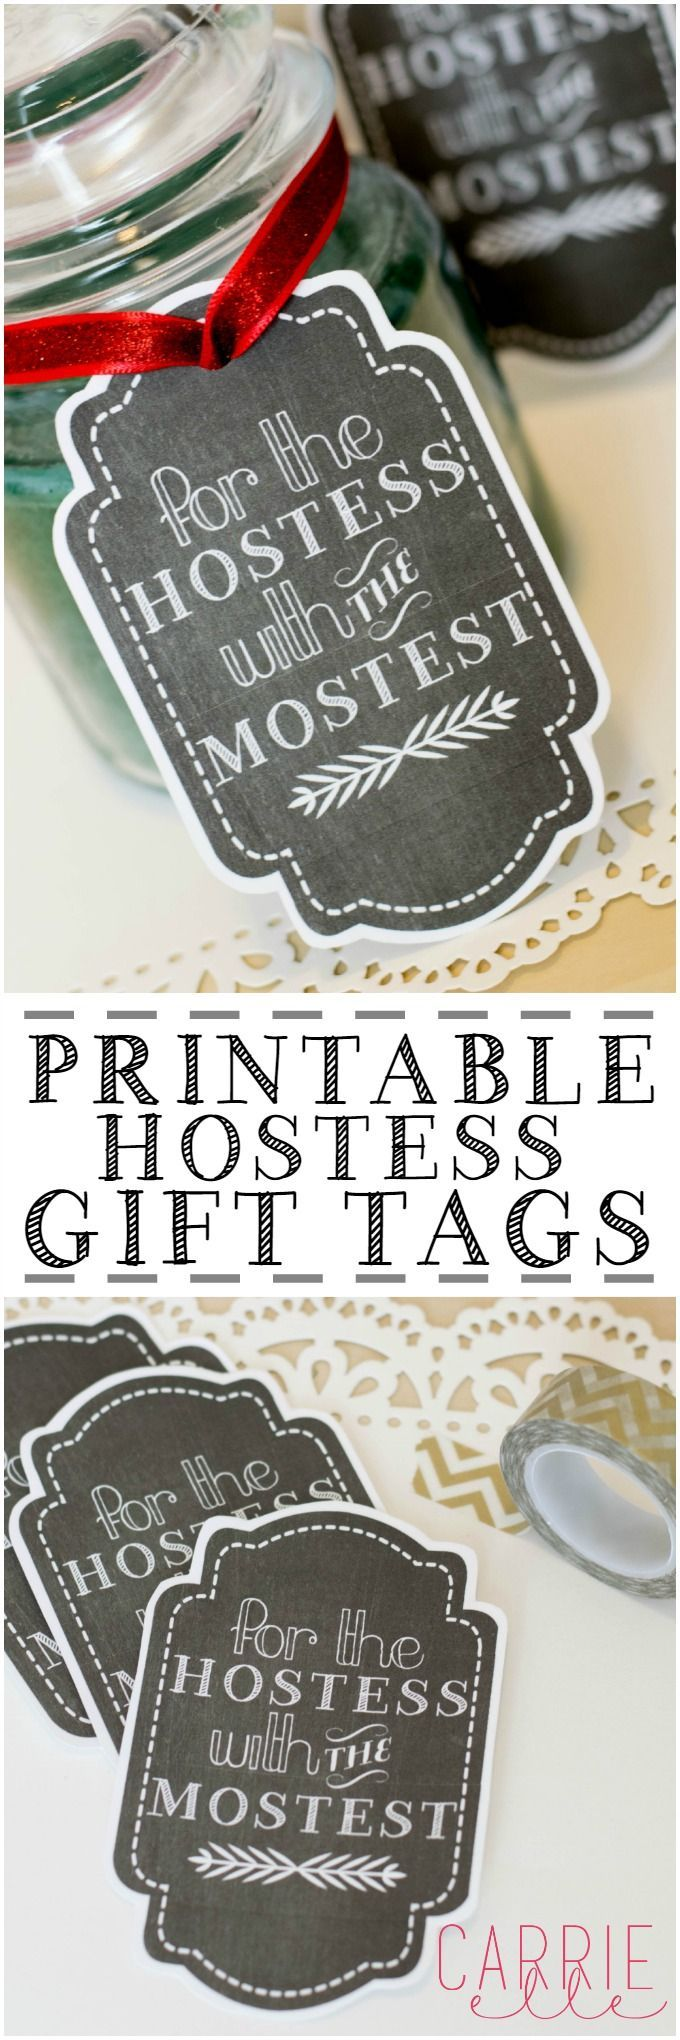 Free printable gift tags hostess gift tag diy ideas for Hostess thank you gift ideas